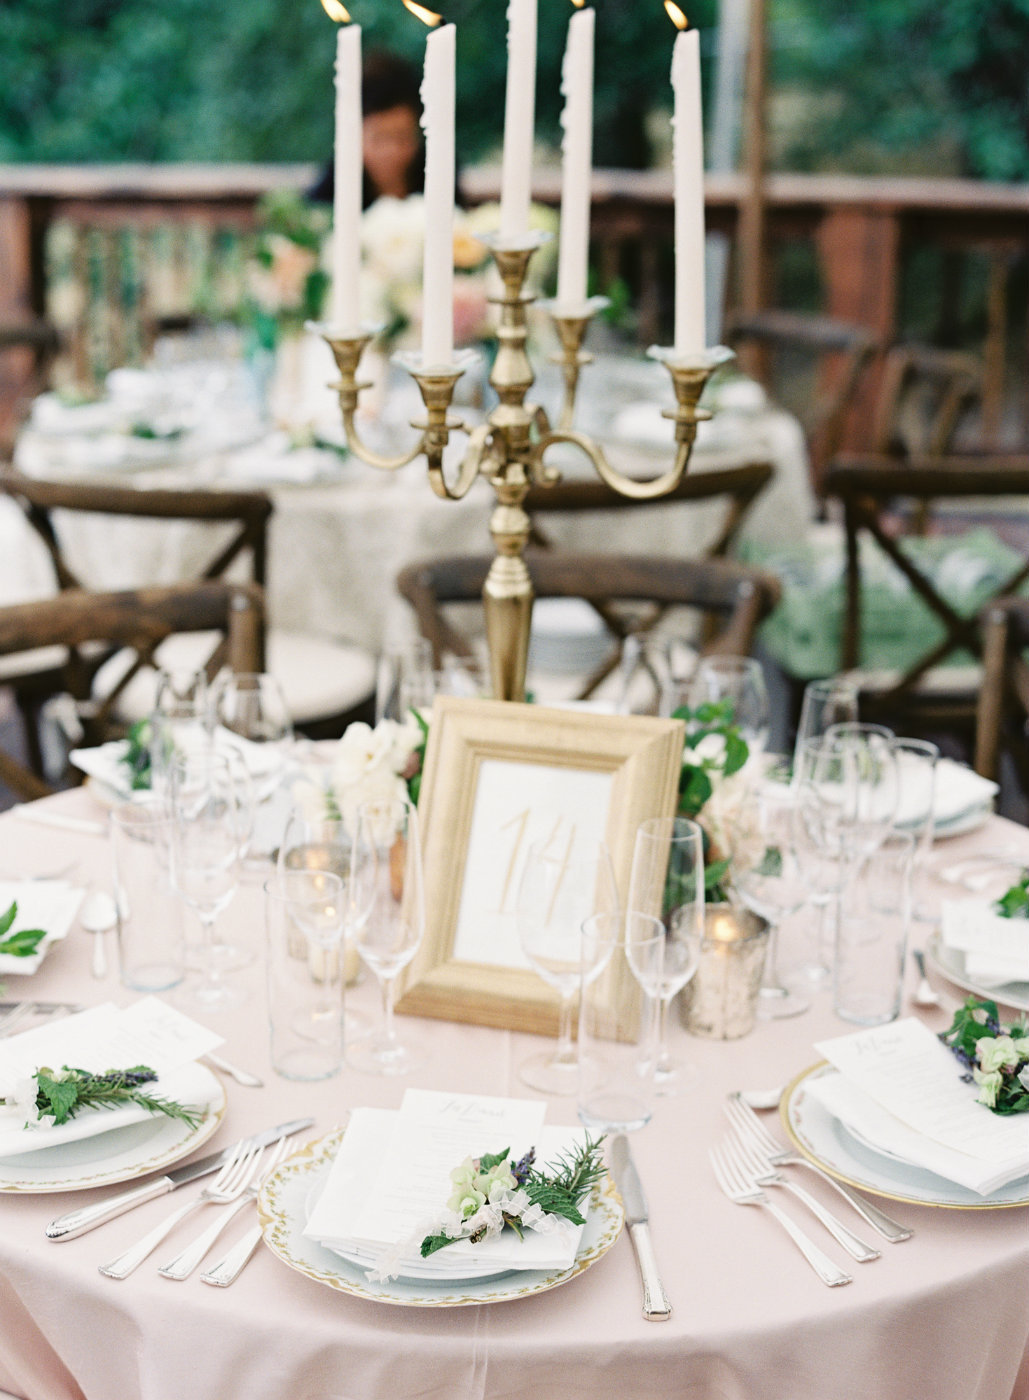 Luxury tent wedding tablescape with gold candelabra and hand tied posies at each place setting.